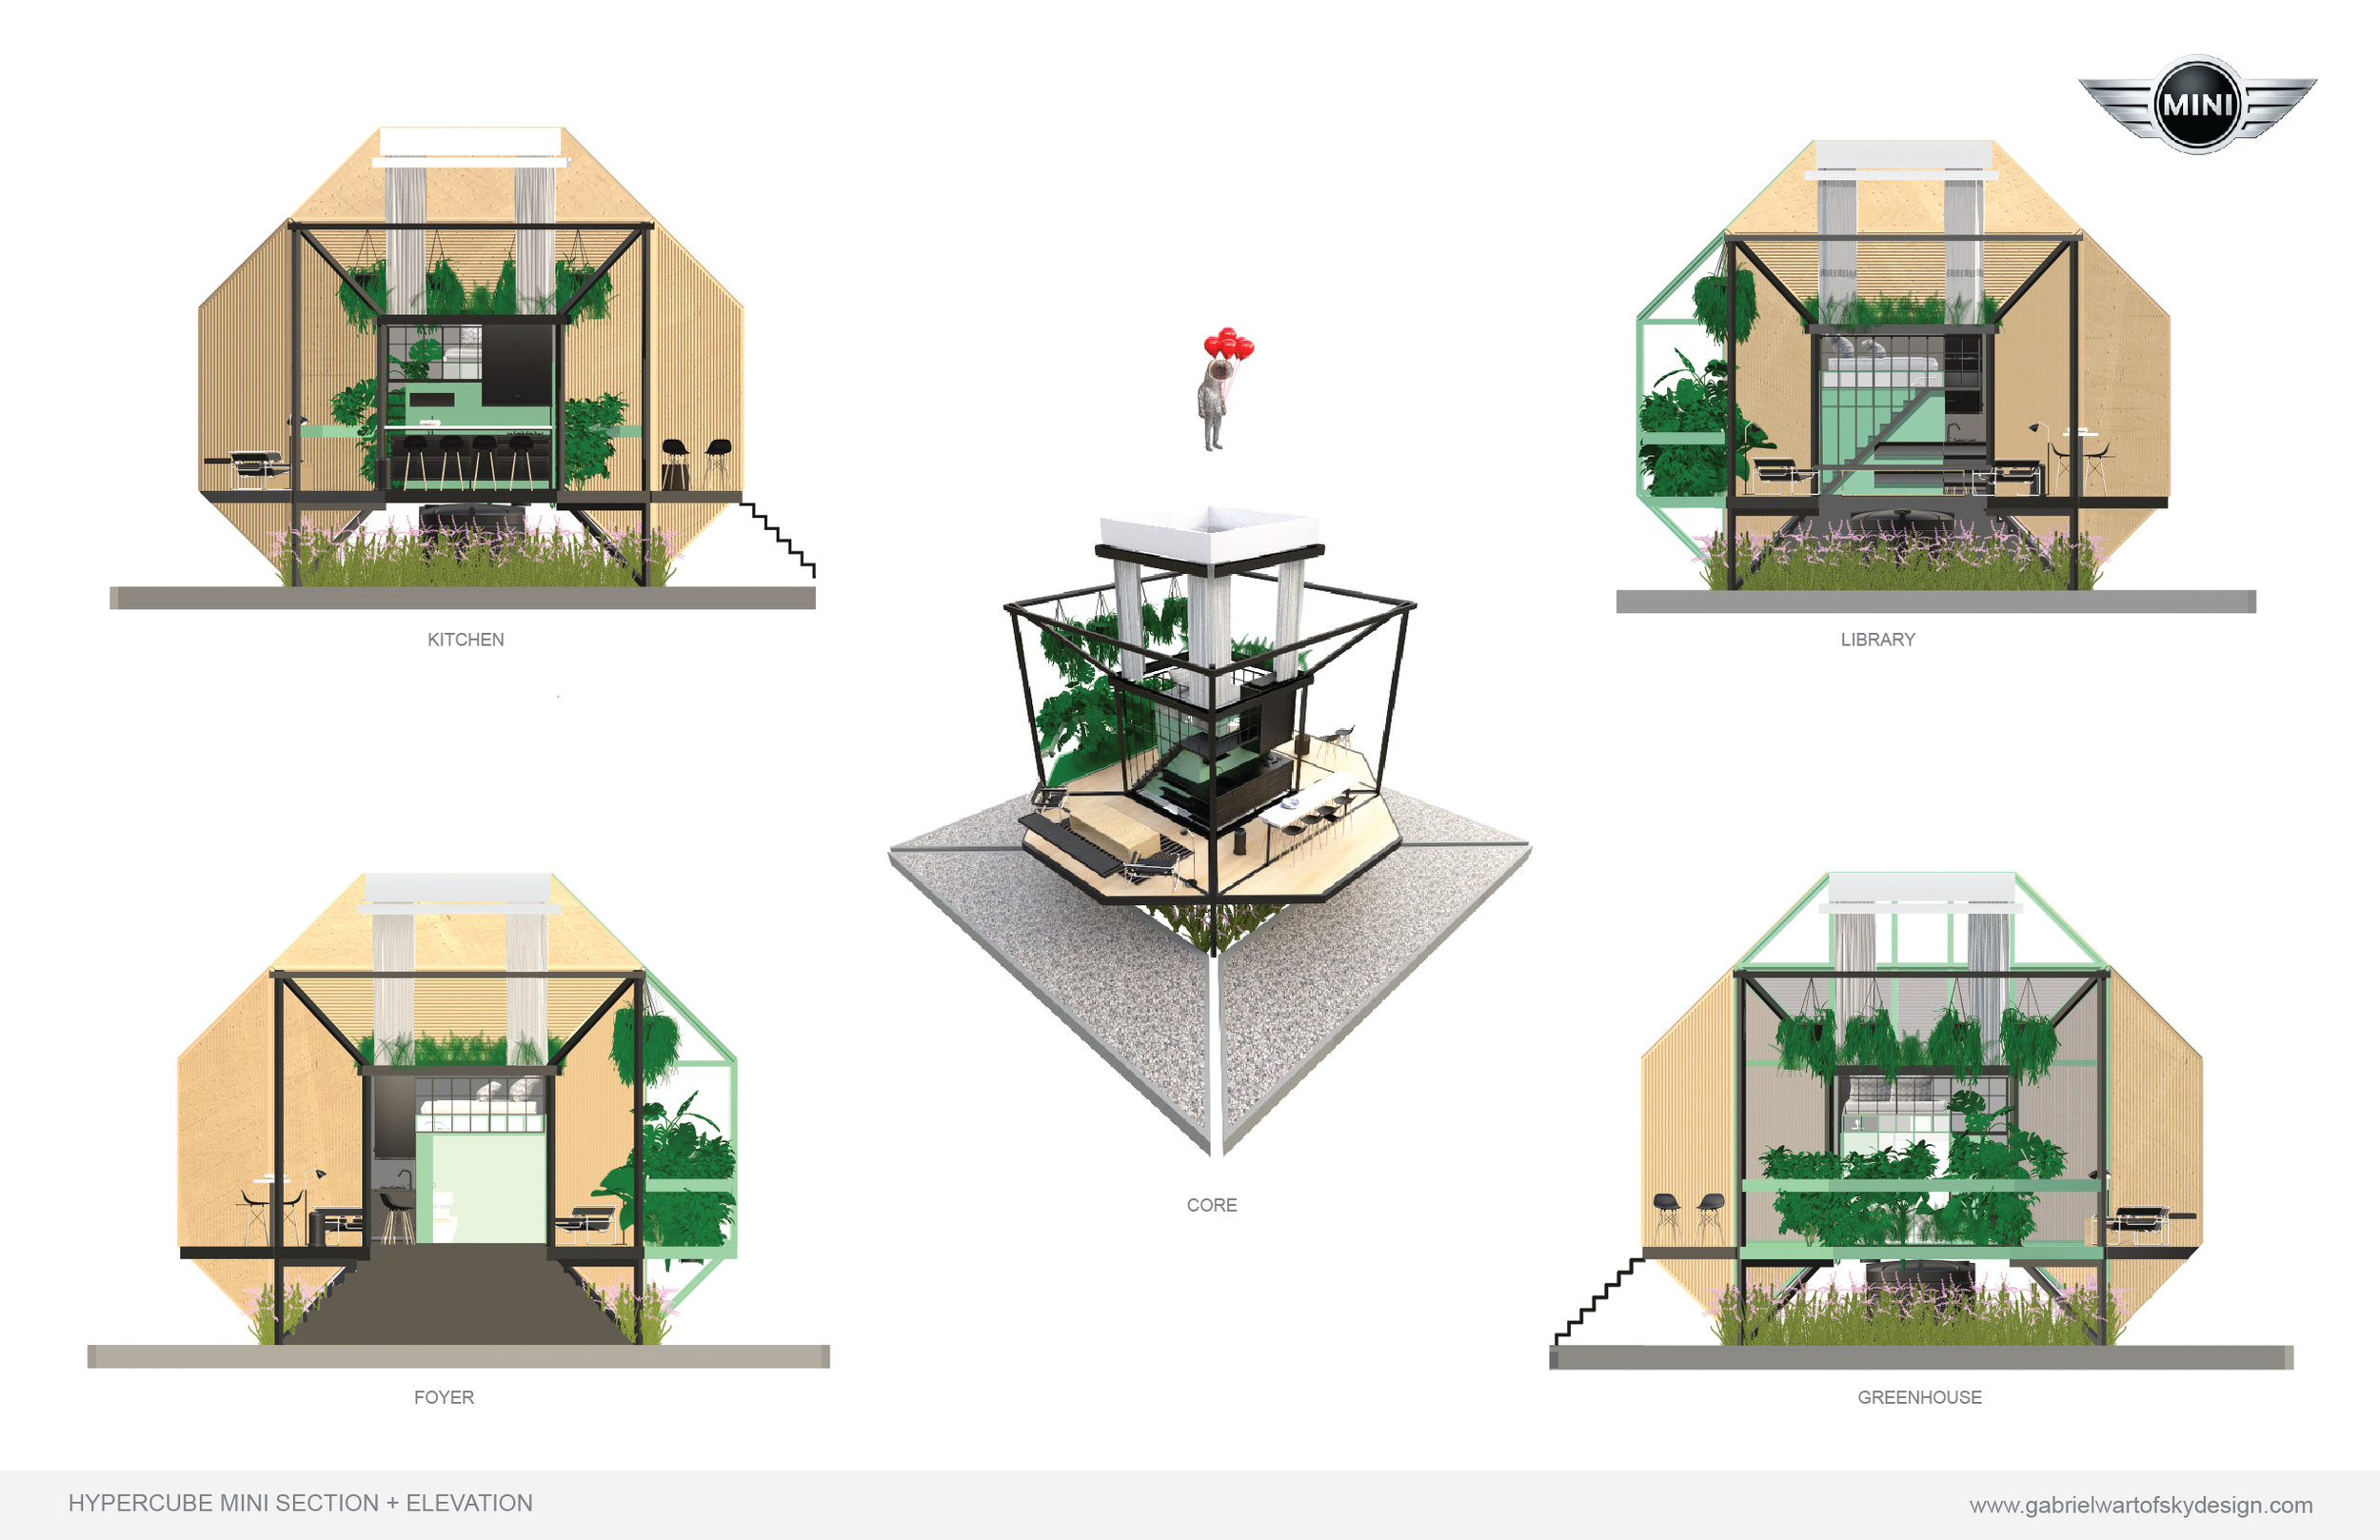 The key element behind the Hypercube design is its central CORE- a 100 sq ft prefab module that integrates kitchen, bathroom and bedroom along with water filtration and energy capture/storage.  The Kitchen provides a space to cook, store goods and socialize. Its vast windows invite the outside scenery in.  The Greenhouse provides a visible connection between natural systems and living space. It grows crops/plants, filters grey water and air, and provides a psychological tone of balance and serenity.  The Library provides storage, social space and beautiful views.  The Bathroom provides a private space to tend to body, as well a solar battery pack for energy storage.  The Bedroom sits atop the Core, with curtains providing selective privacy while a large skylight view provides an intimate view of the heaven's above.